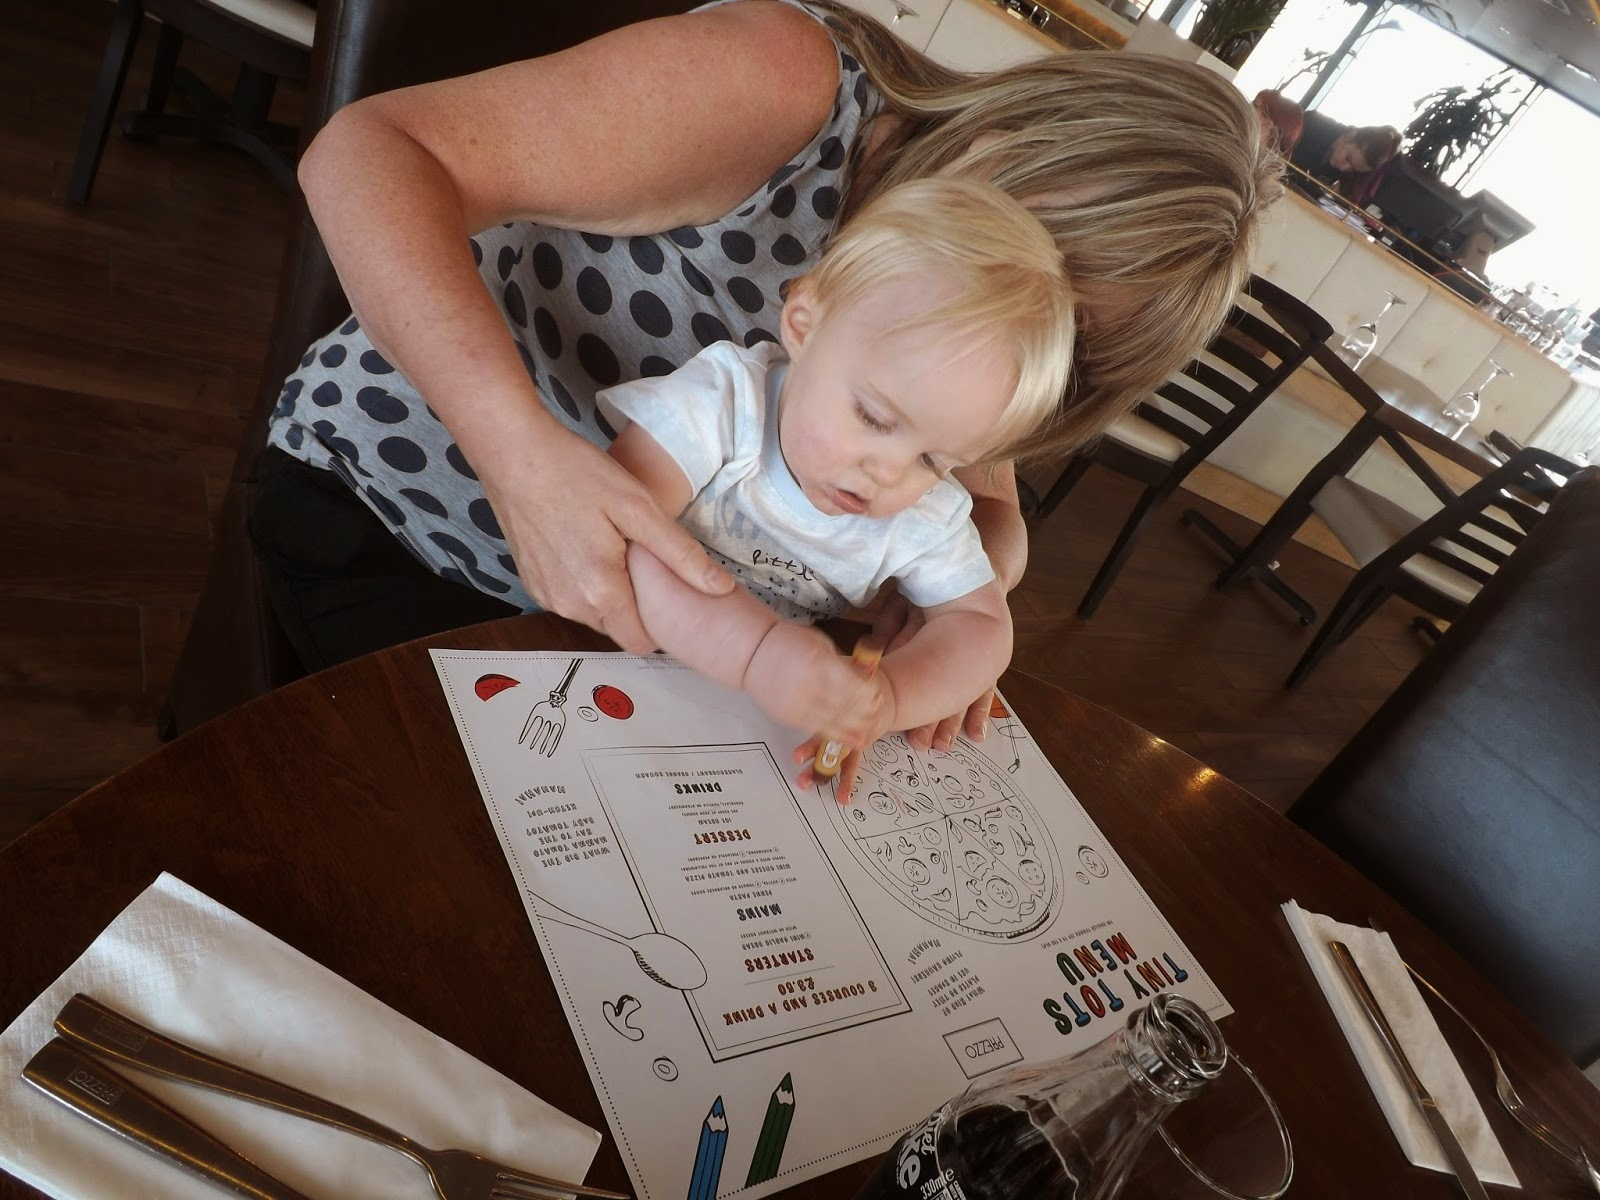 Prezzo: Review